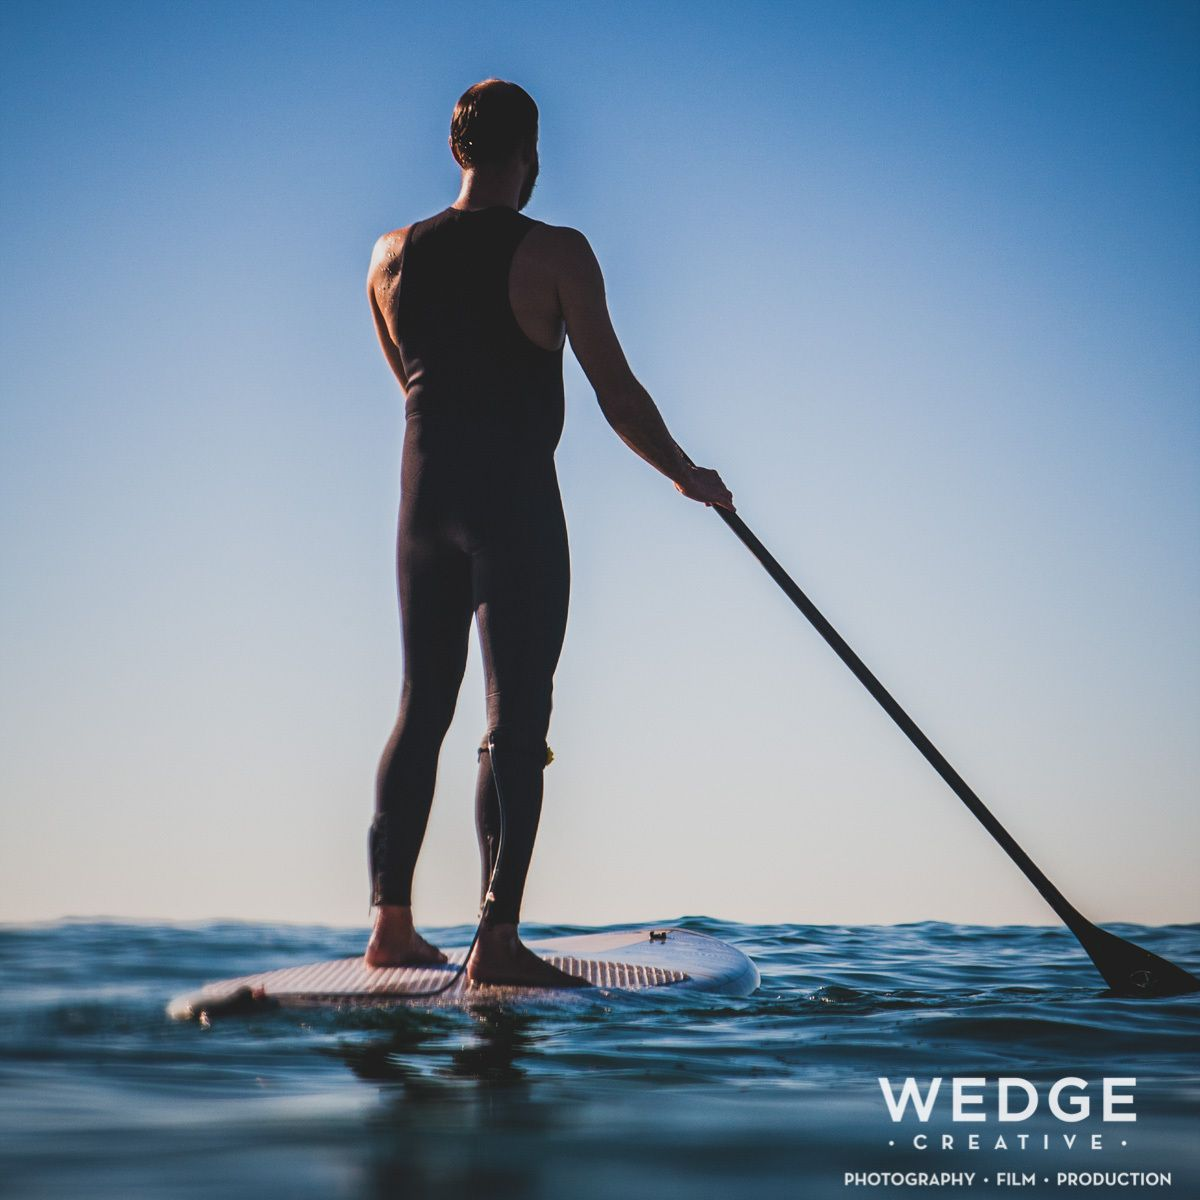 WEDGE Creative Photography • Film • Production